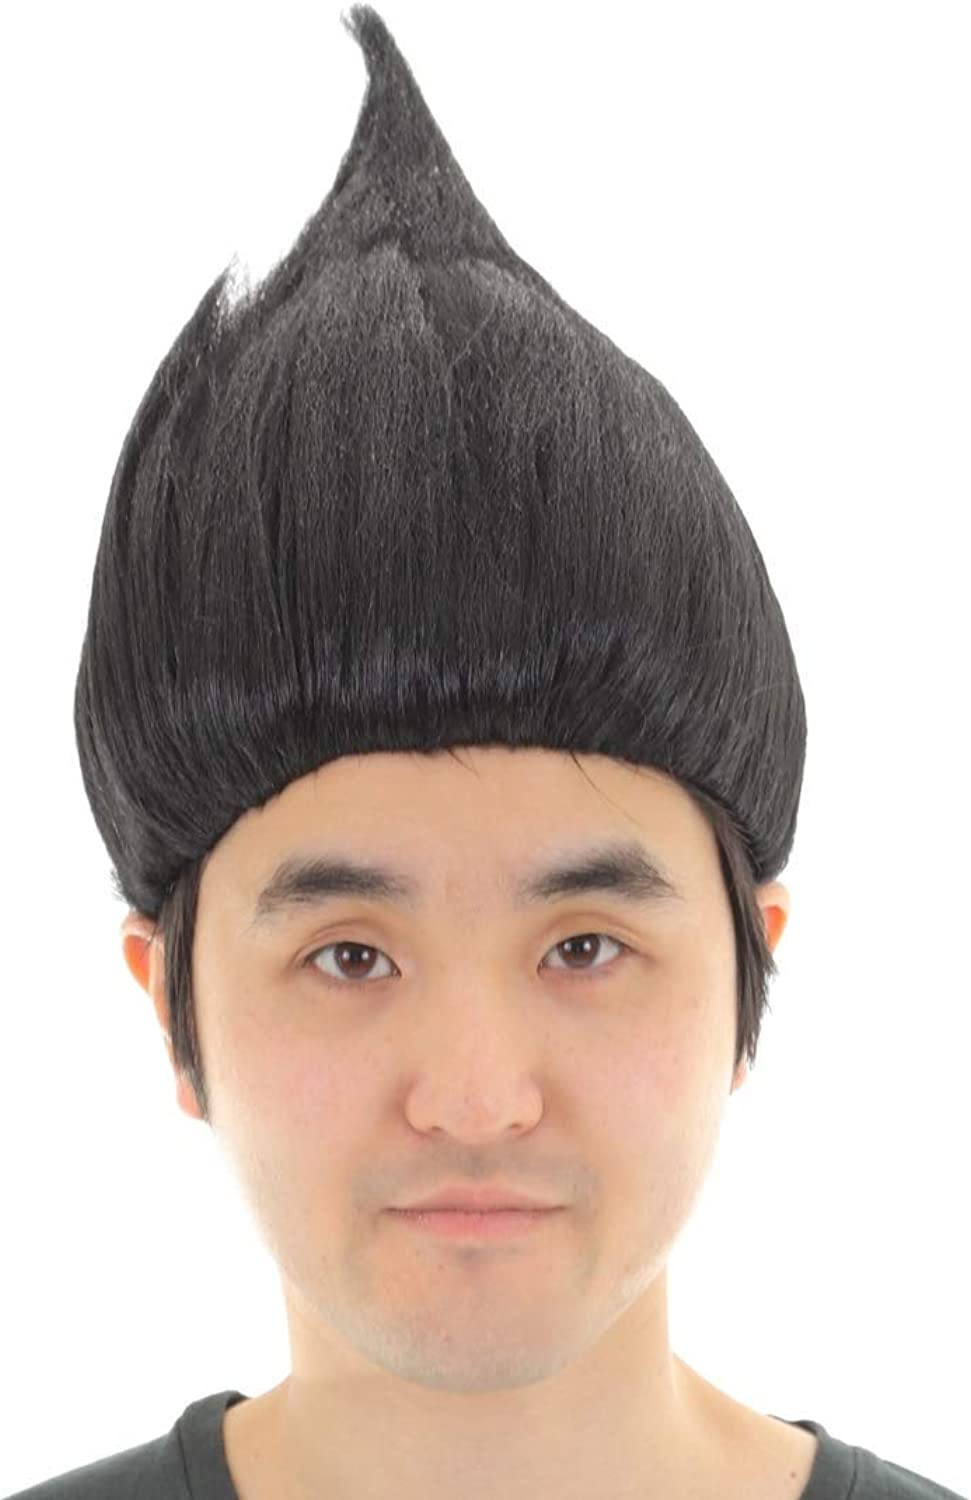 (Yotei) Youtei pointed onion head fairy flame wig cosplay (one size black)